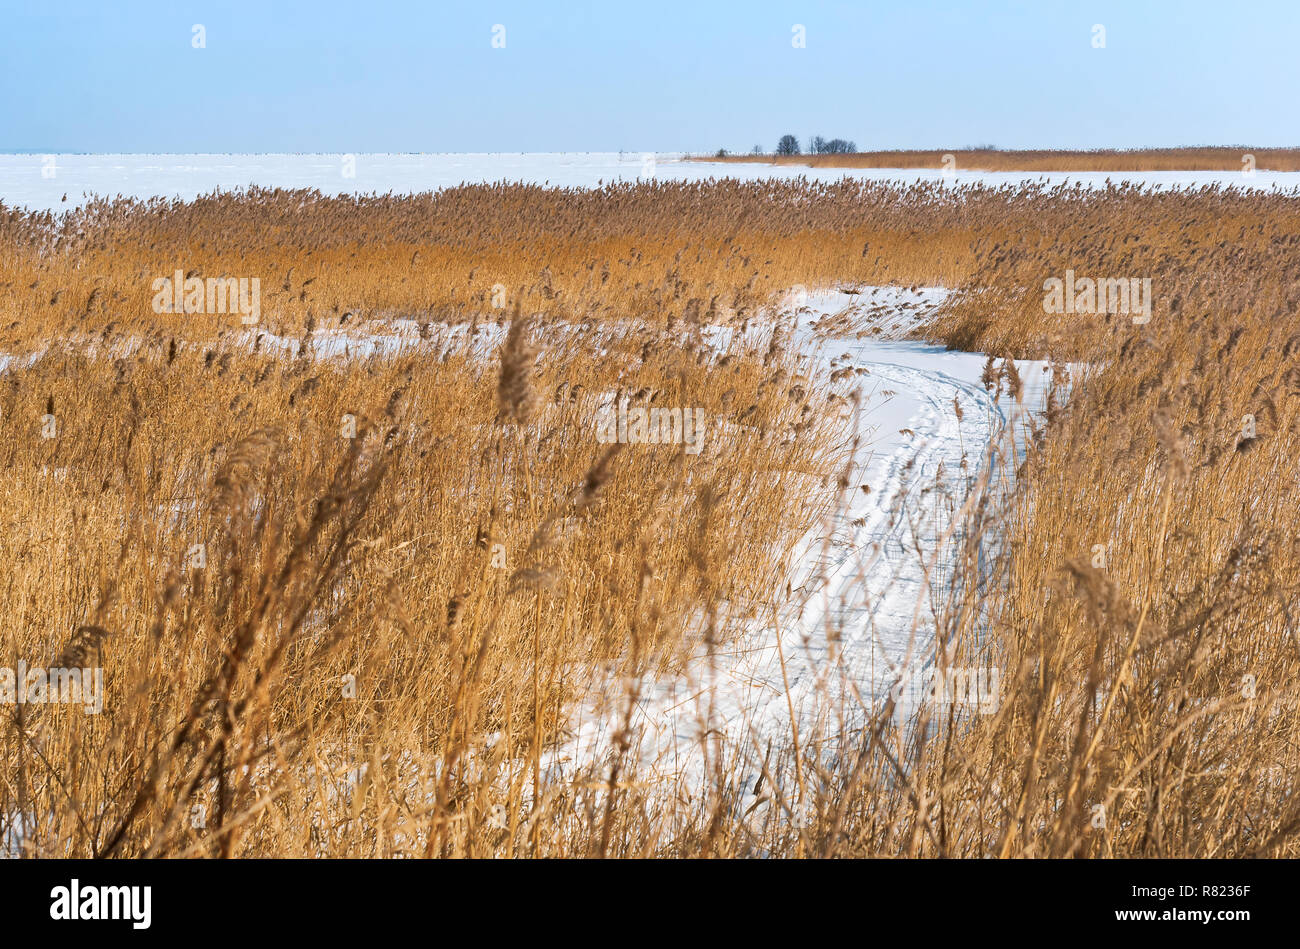 reeds on the shore of the reservoir, the path in the snow among the tall grass Stock Photo